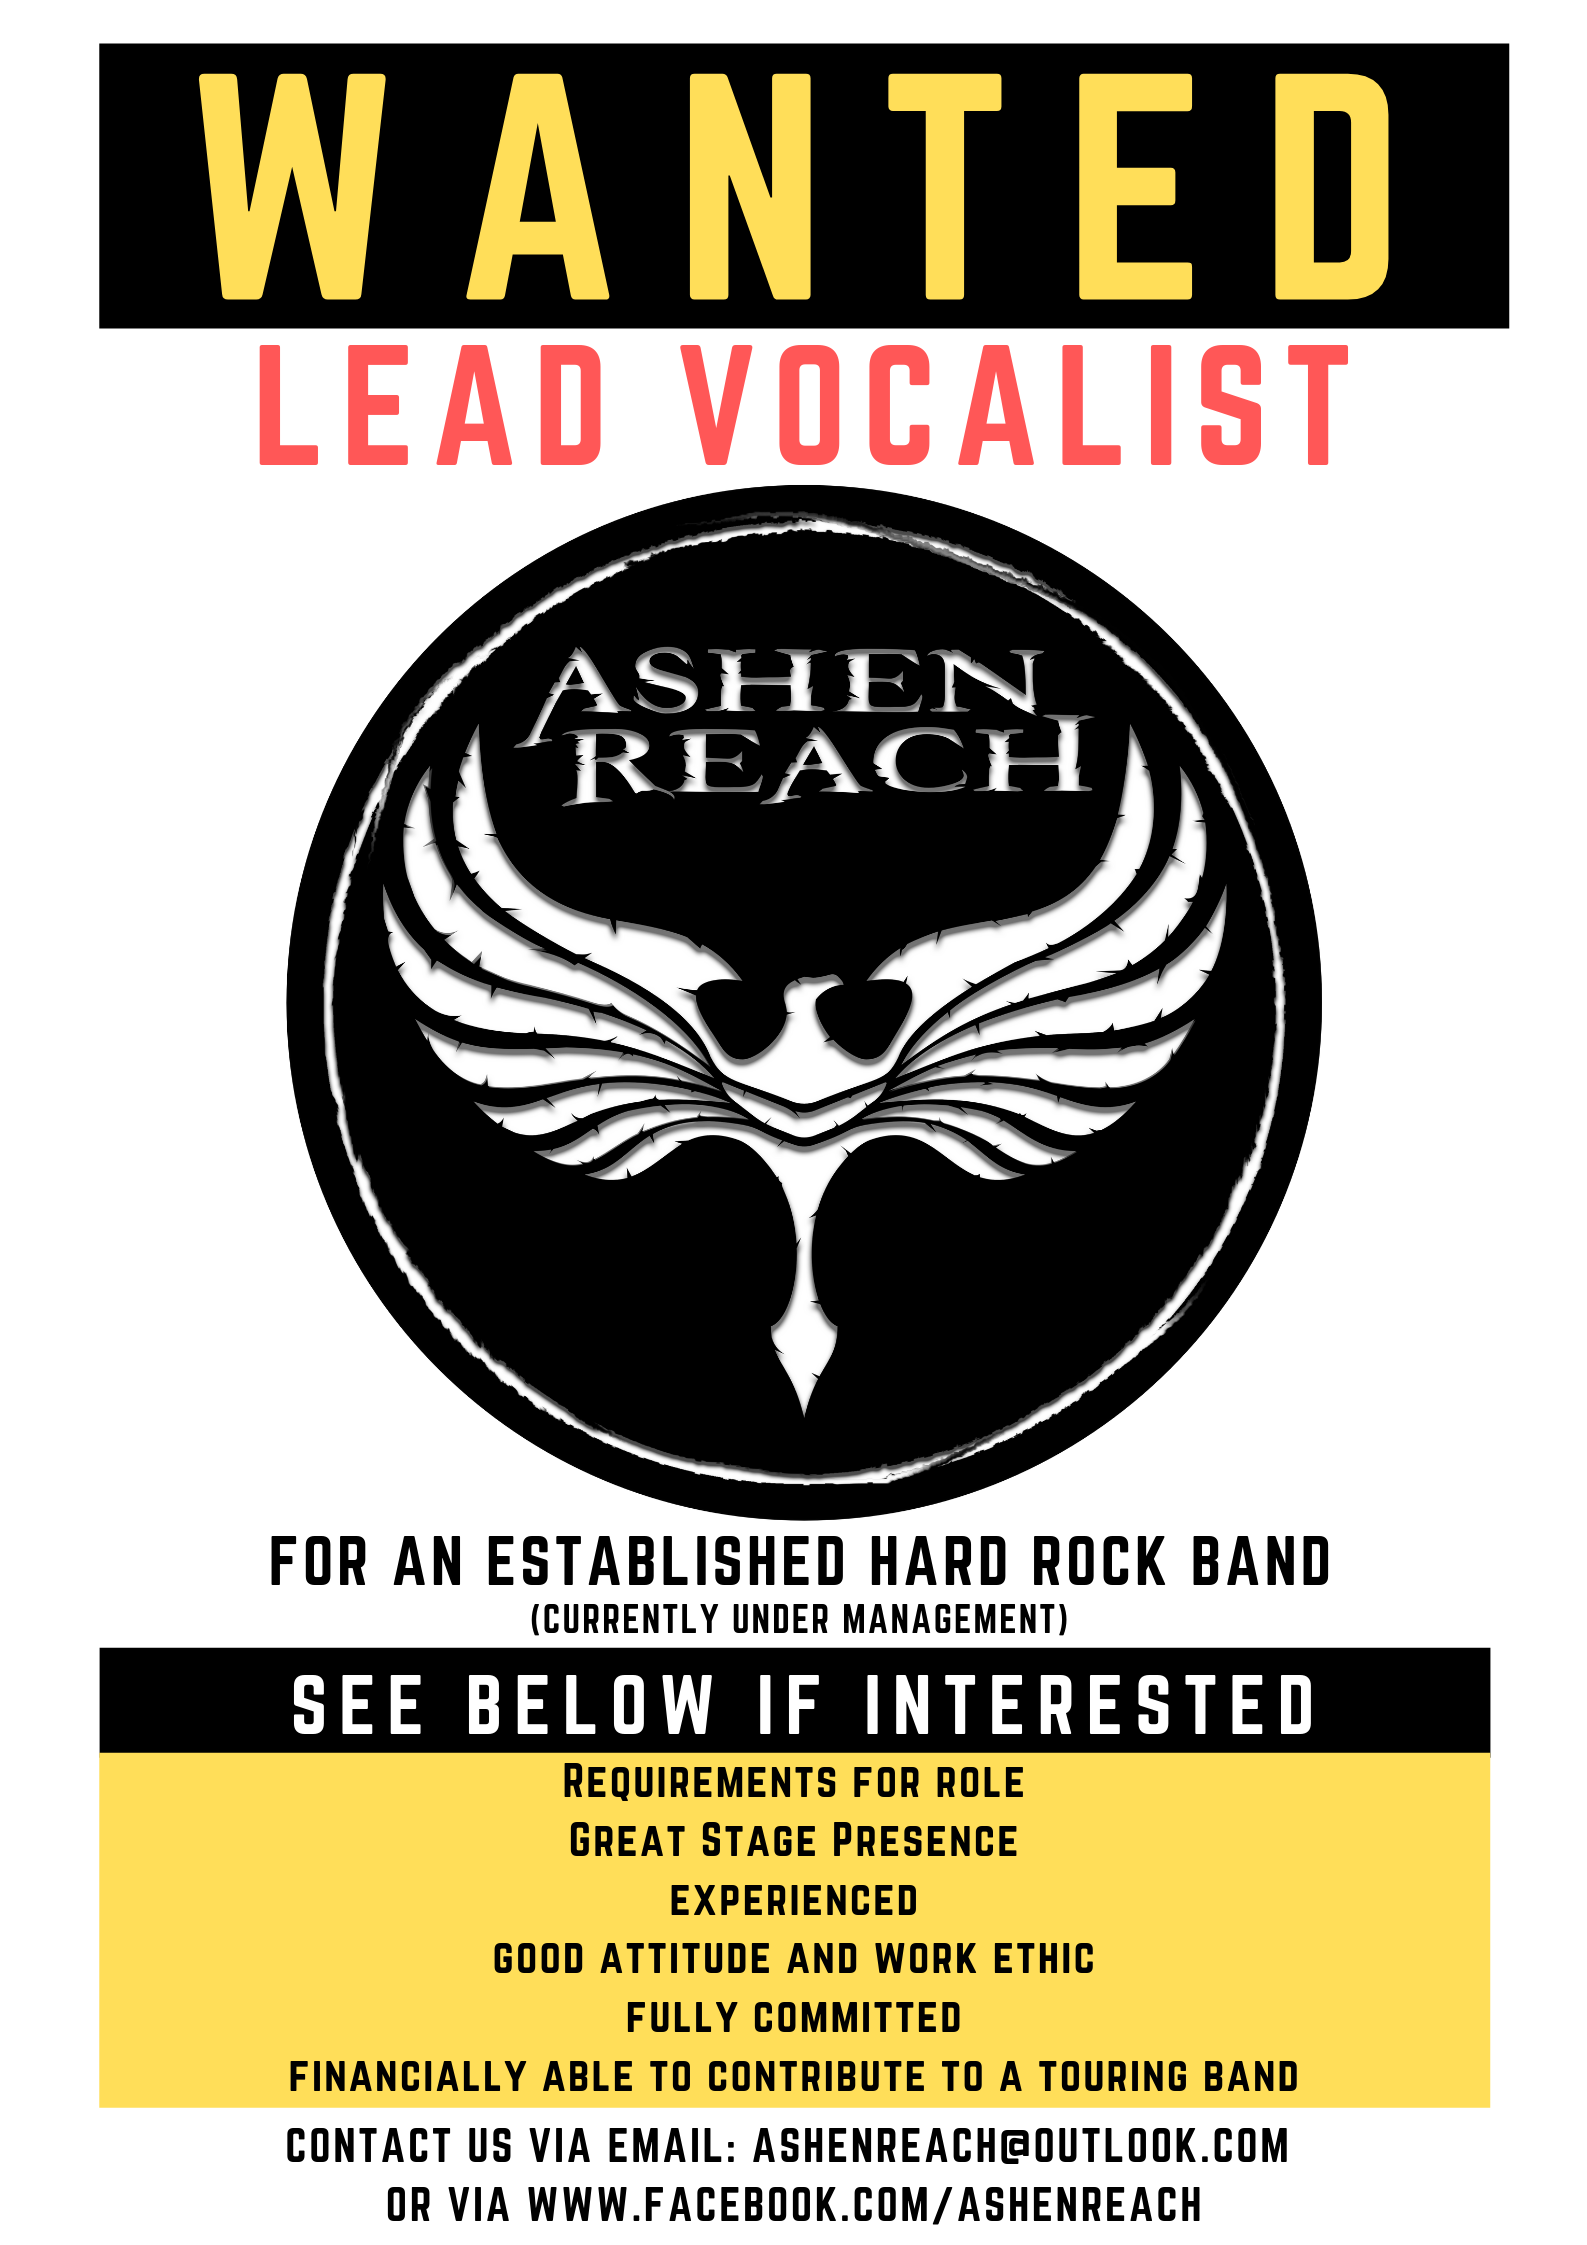 Ashen Vocal Wanted